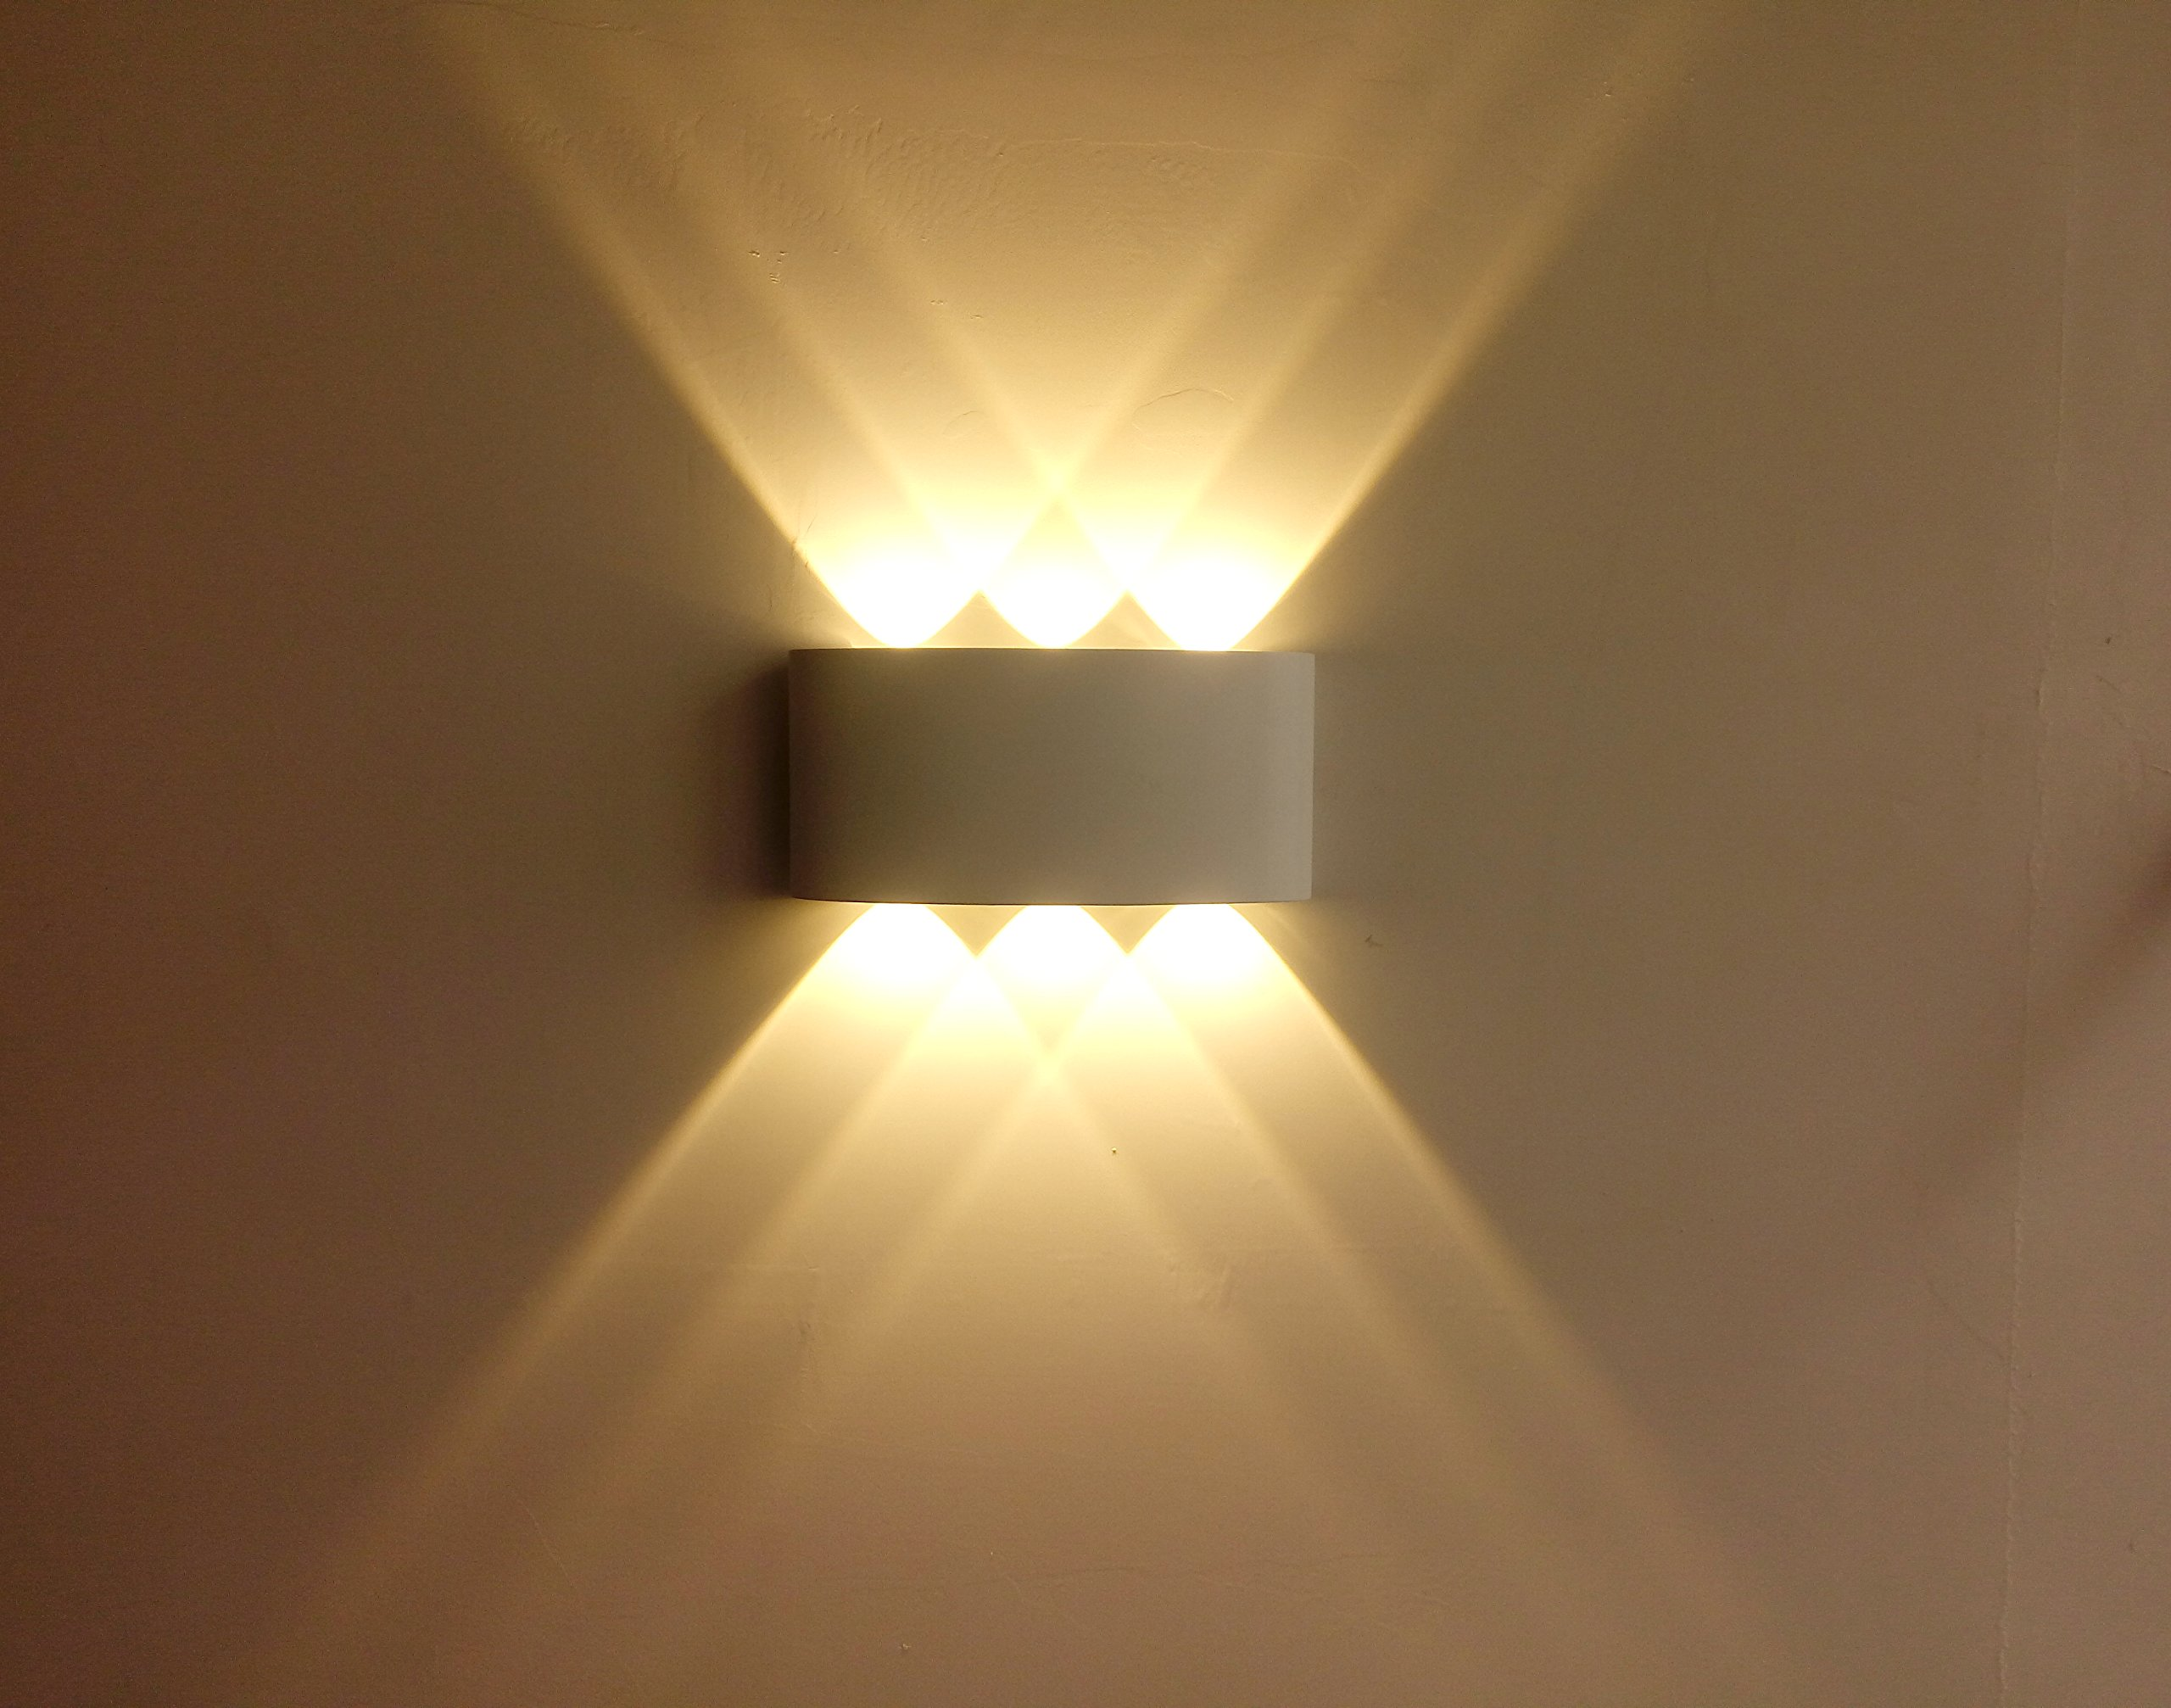 LED Outdoor Wall Sconce Aluminum Waterproof Wall Lighting IP65 6W Outdoor Wall Light Warm White, White housing